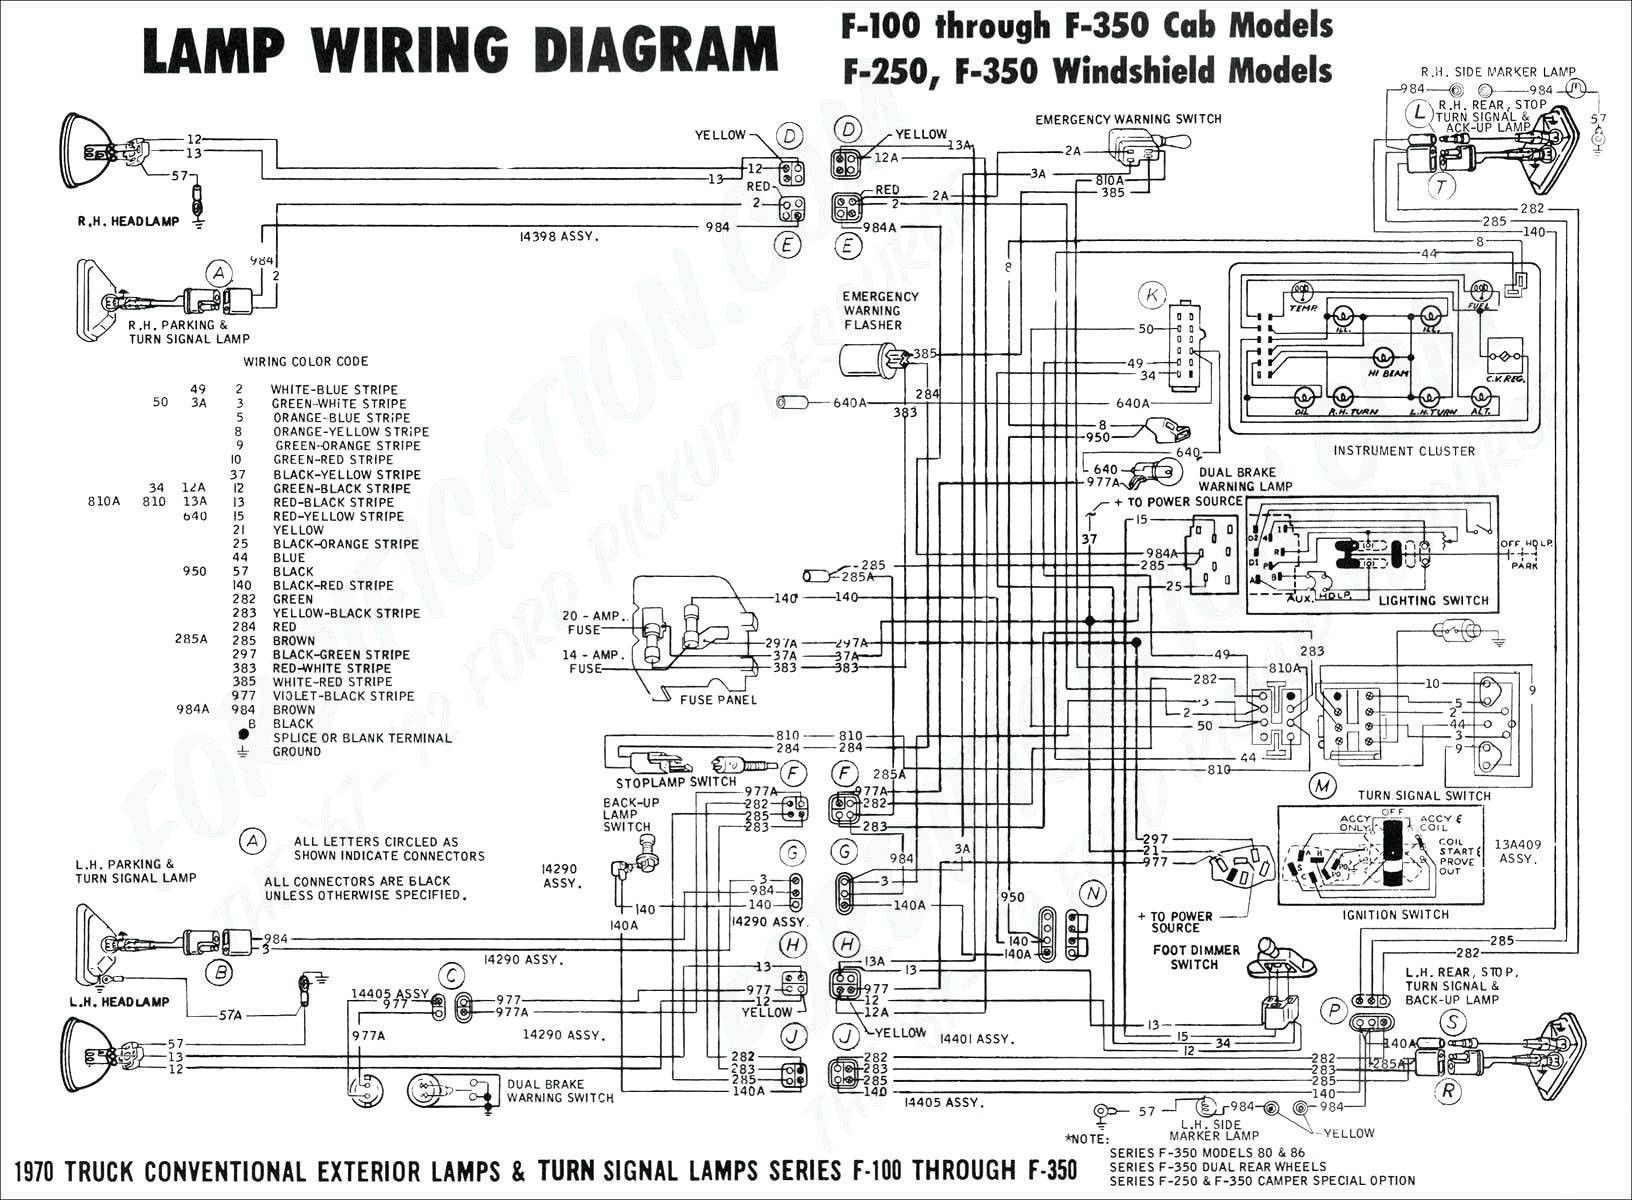 Unique Electrical Diagram Drawing Sample Download With